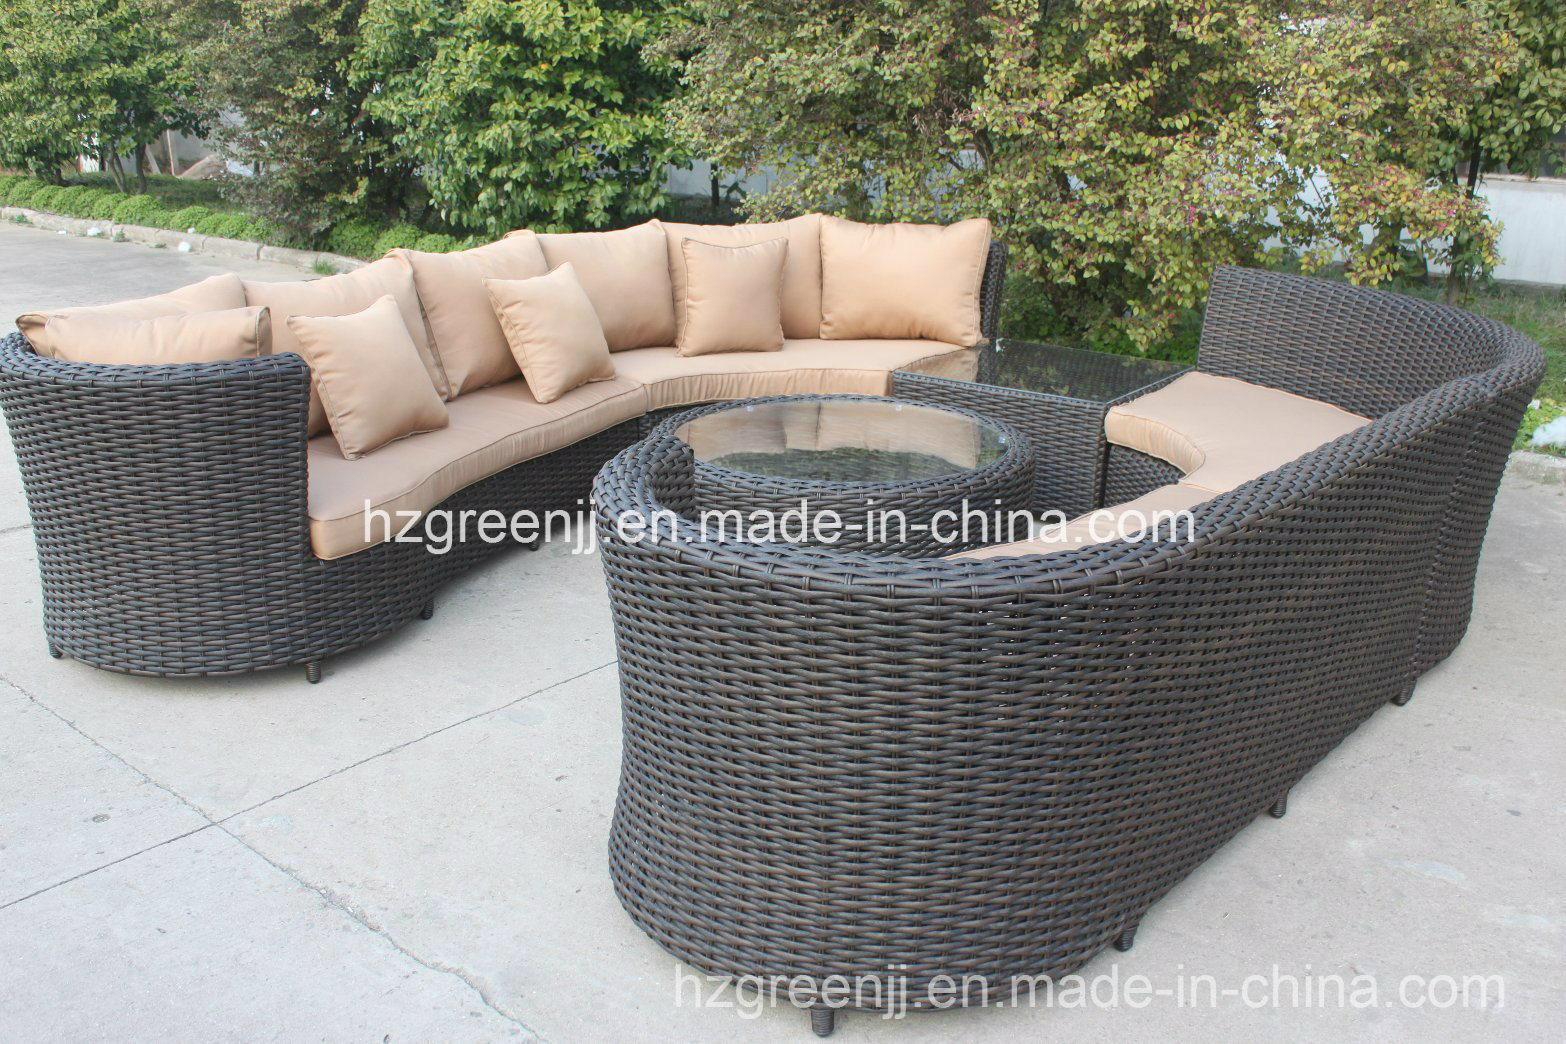 6 Pieces Curved Sectional Sofa Set Weave Rattan Furniture